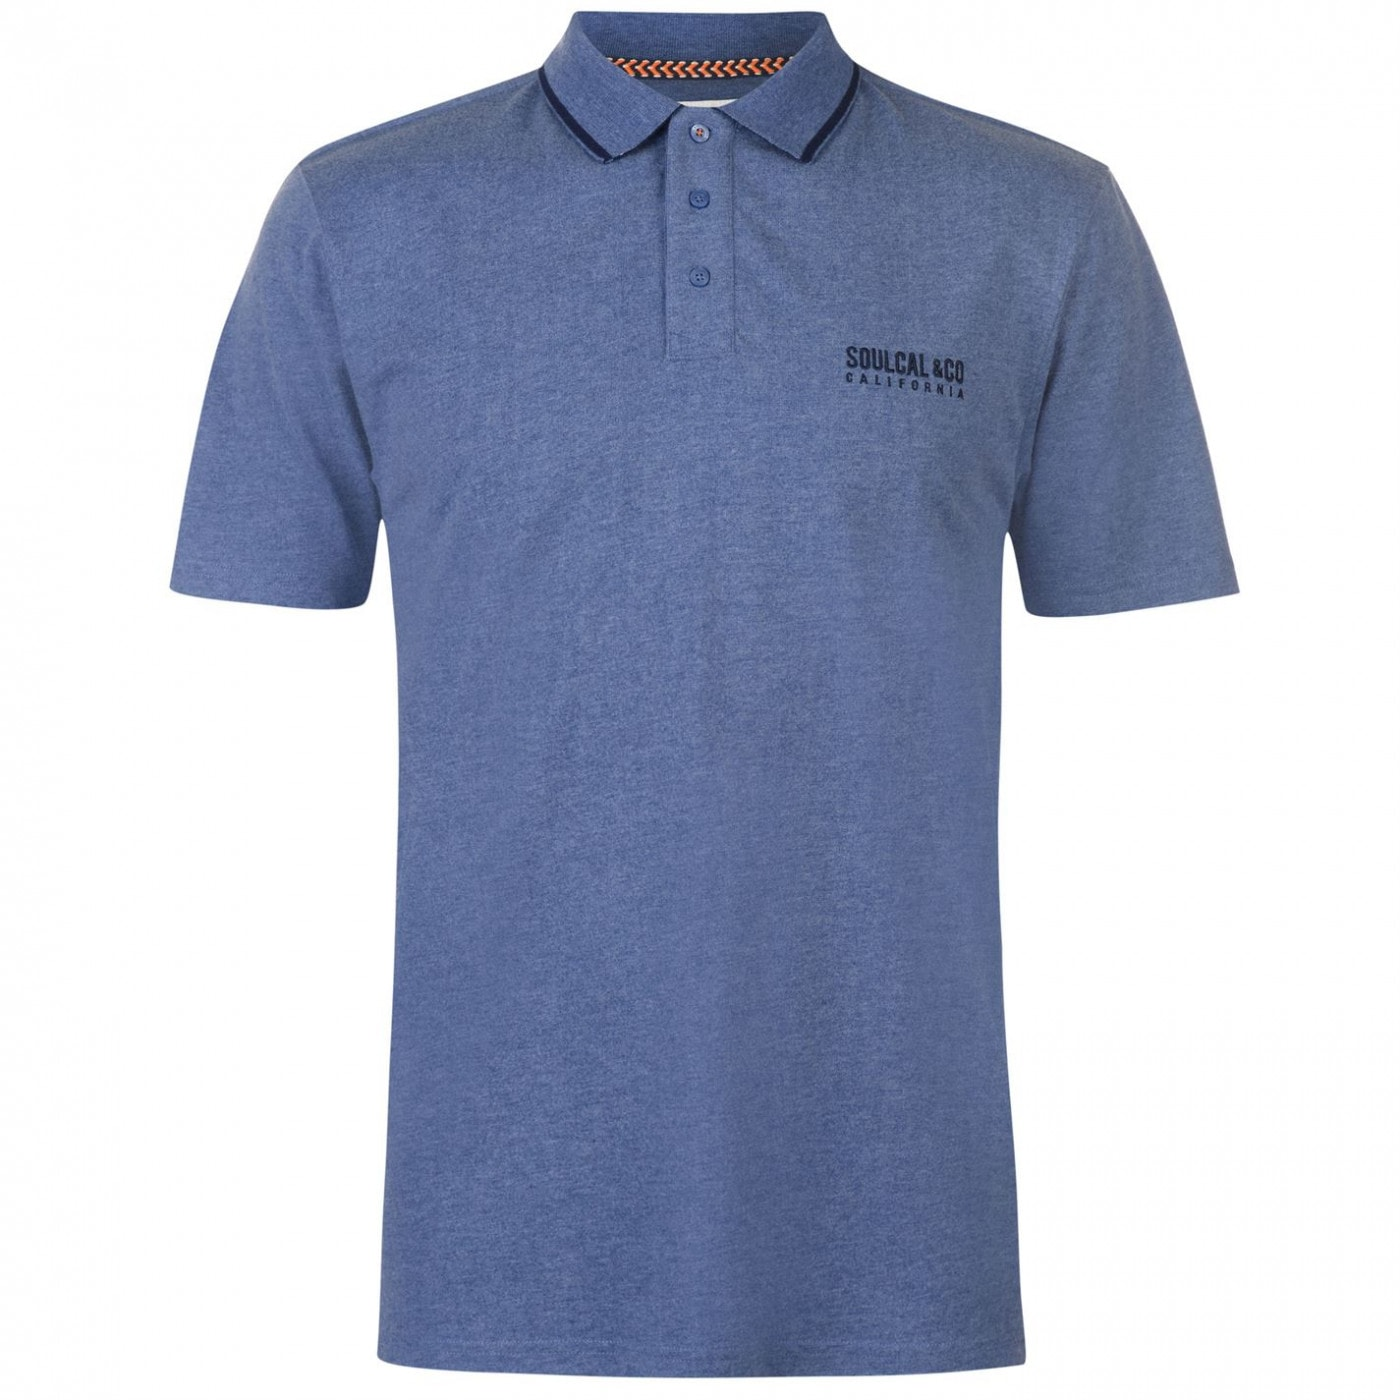 SoulCal Signature Polo Shirt Mens